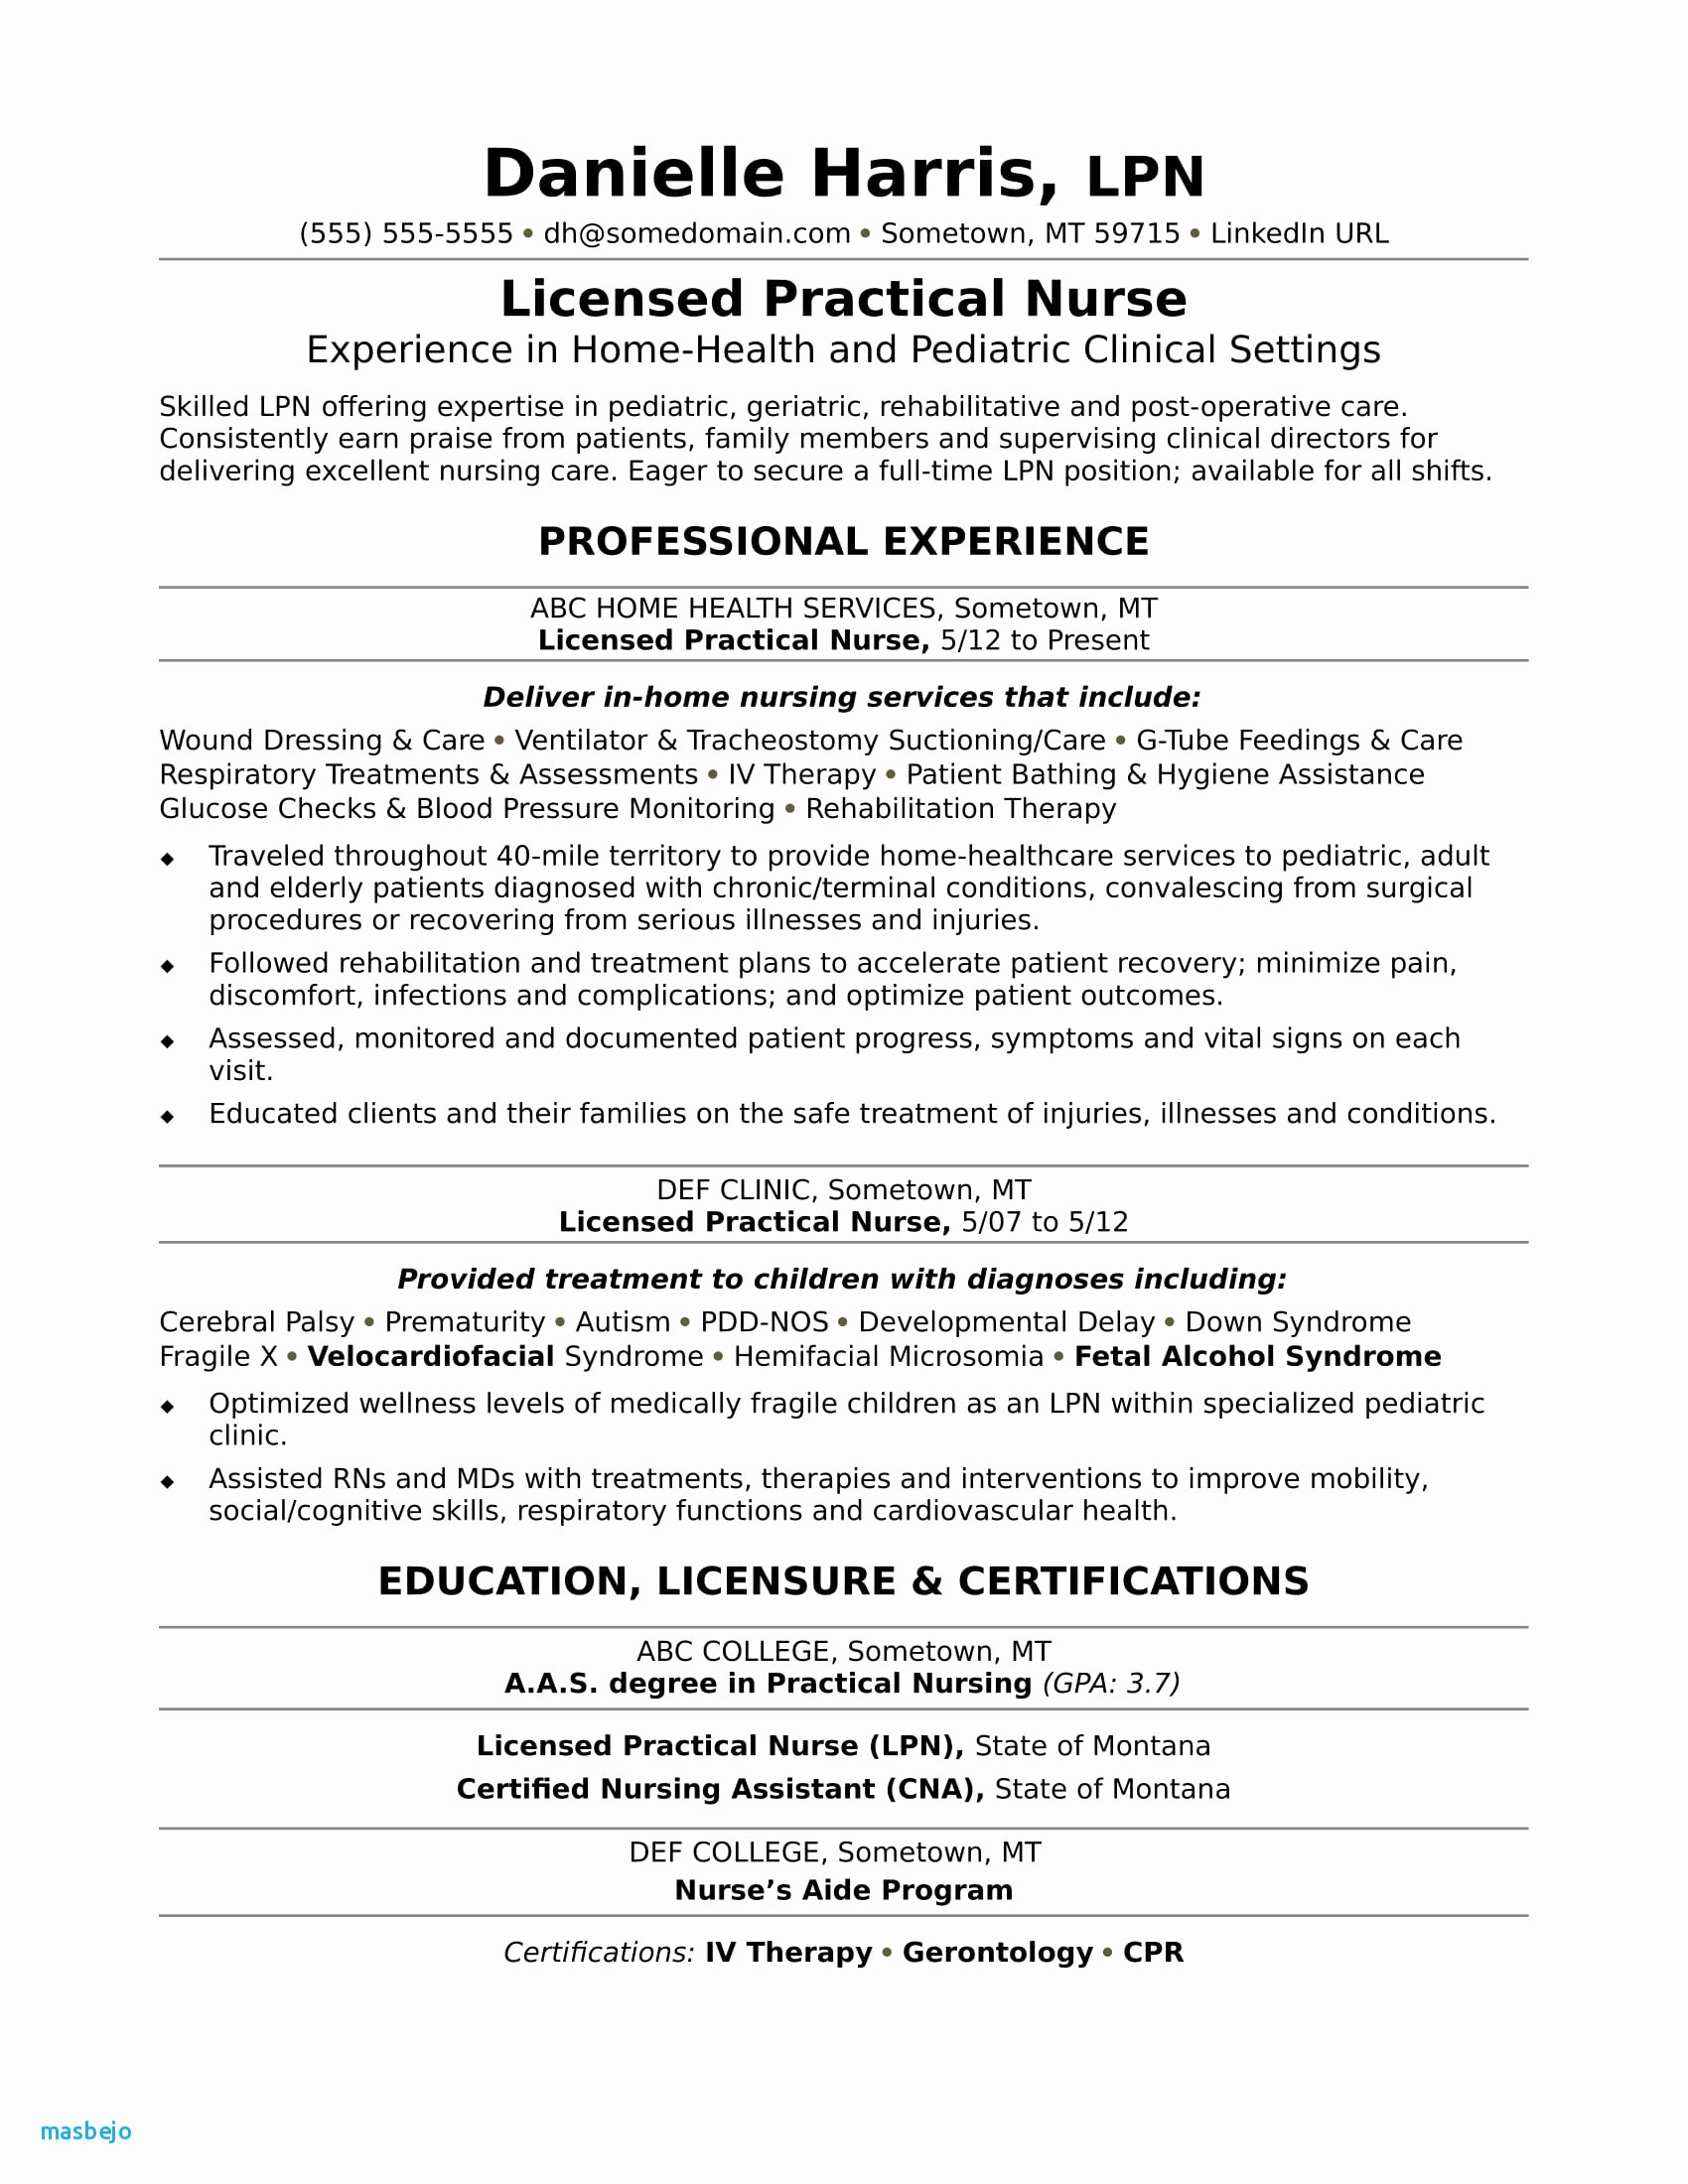 Nurse Practitioner Resume Examples - Sample Resume for A New Registered Nurse Resume Resume Examples